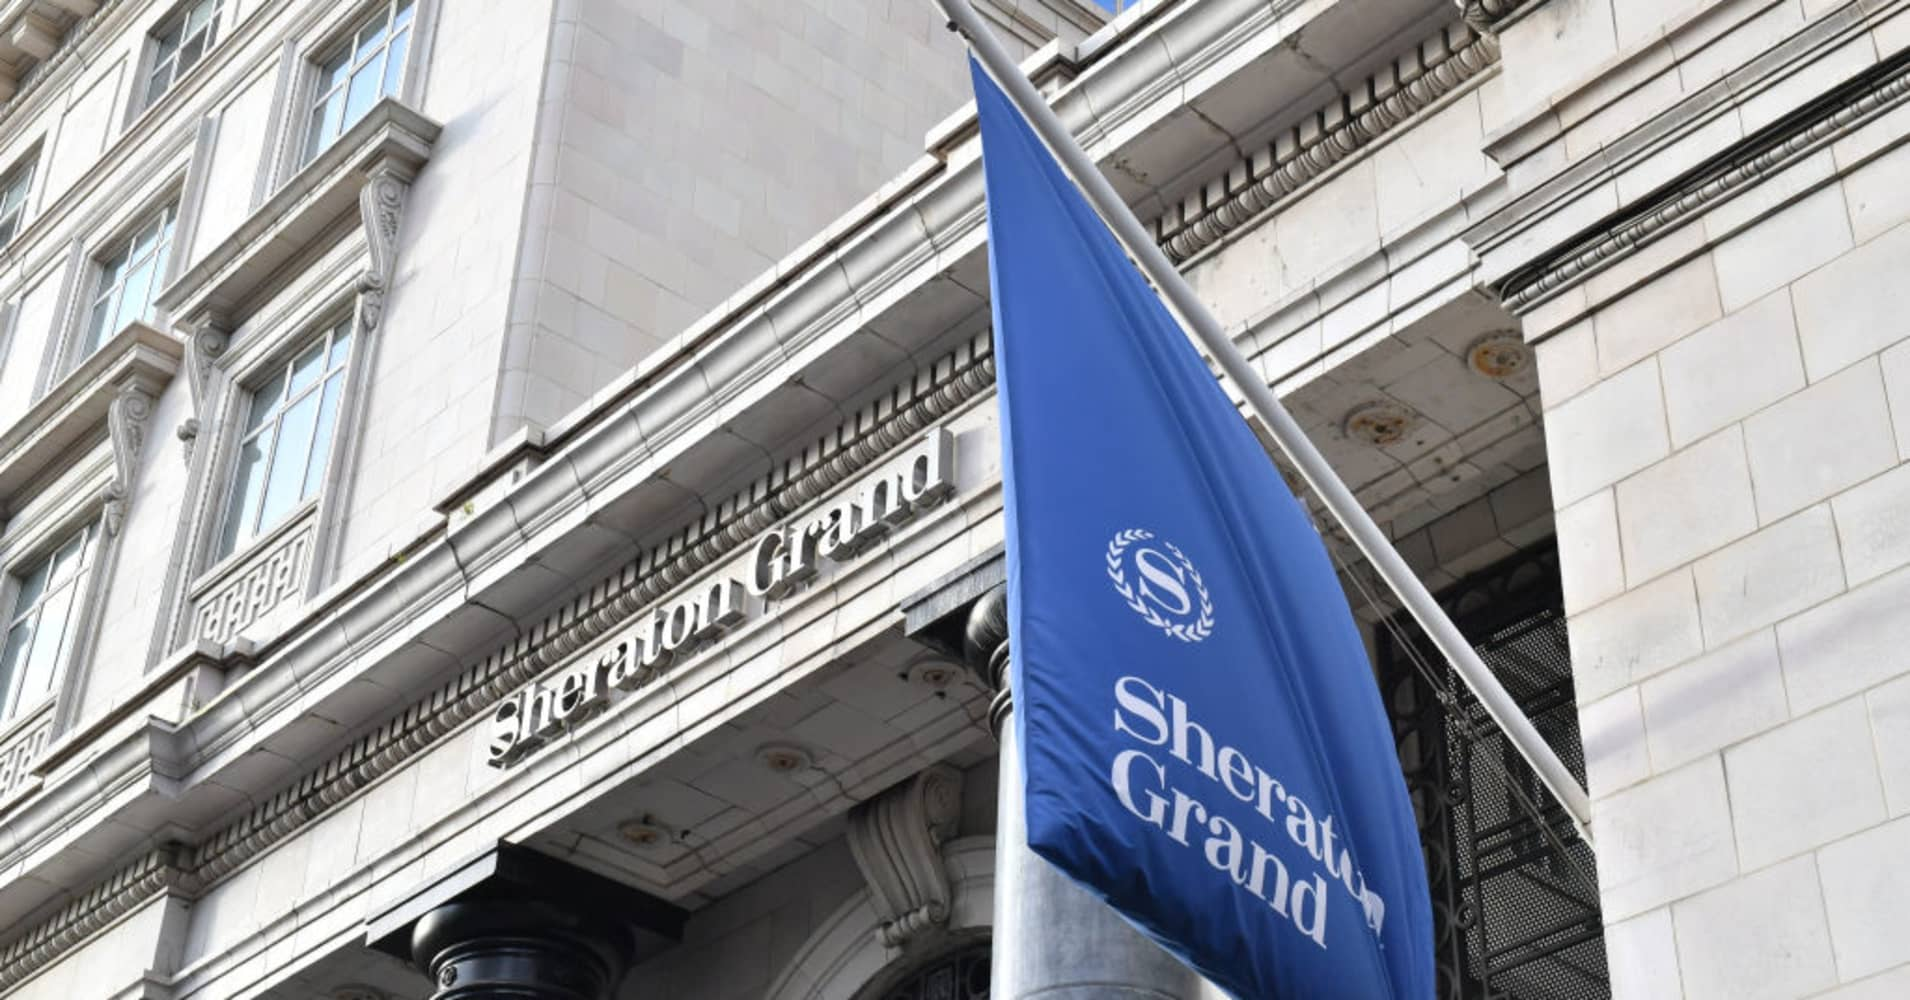 The Park Lane Sheraton Grand In London A Marriott Starwood Hotel Has Announced